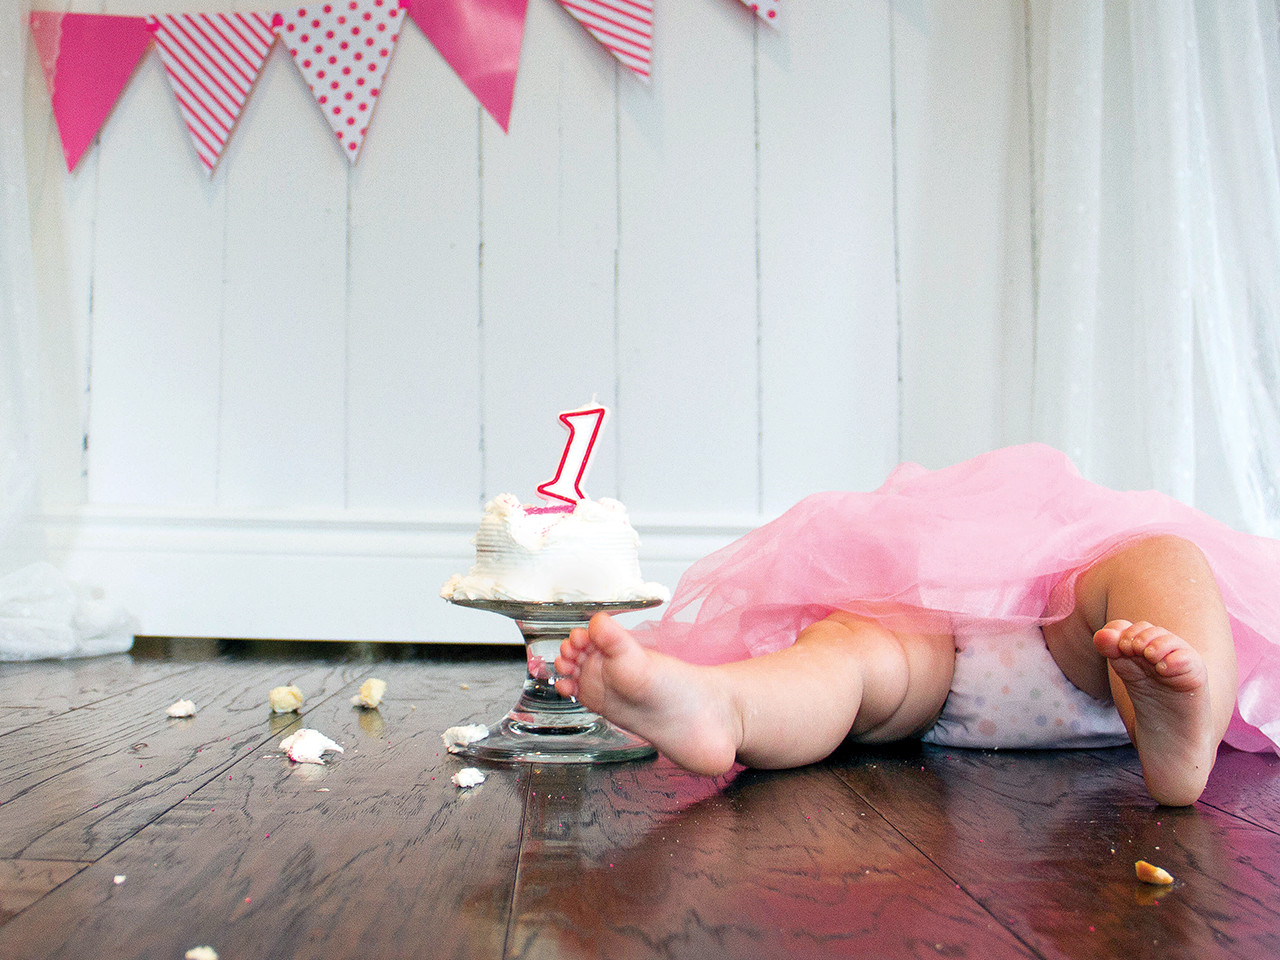 Best ideas about Baby First Birthday Decorations . Save or Pin Planning baby's first birthday party 7 tips to prevent Now.